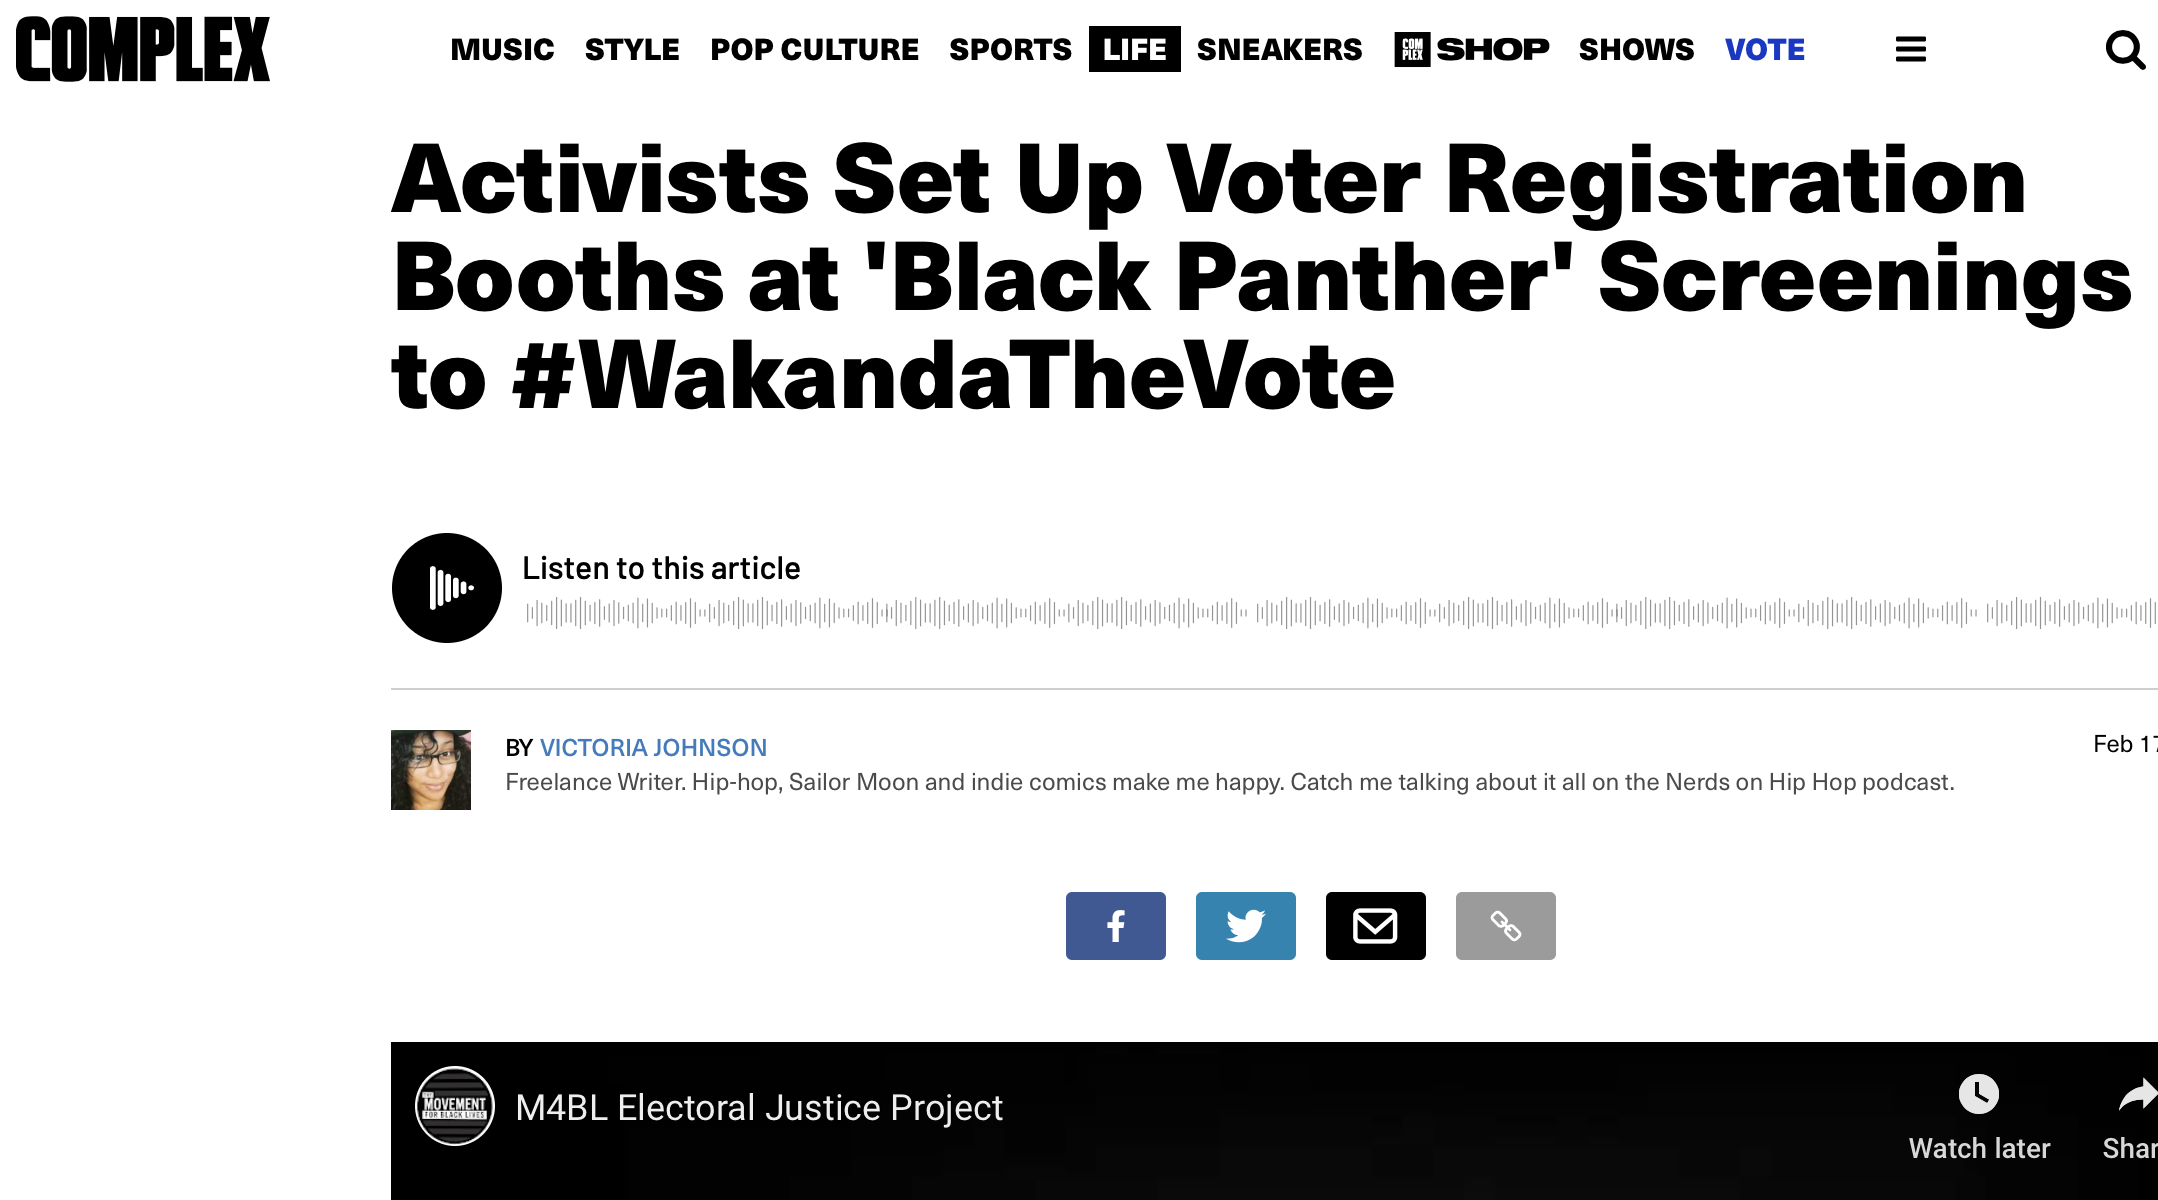 Activists Set Up Voter Registration Booths at 'Black Panther' Screenings to #WakandaTheVote